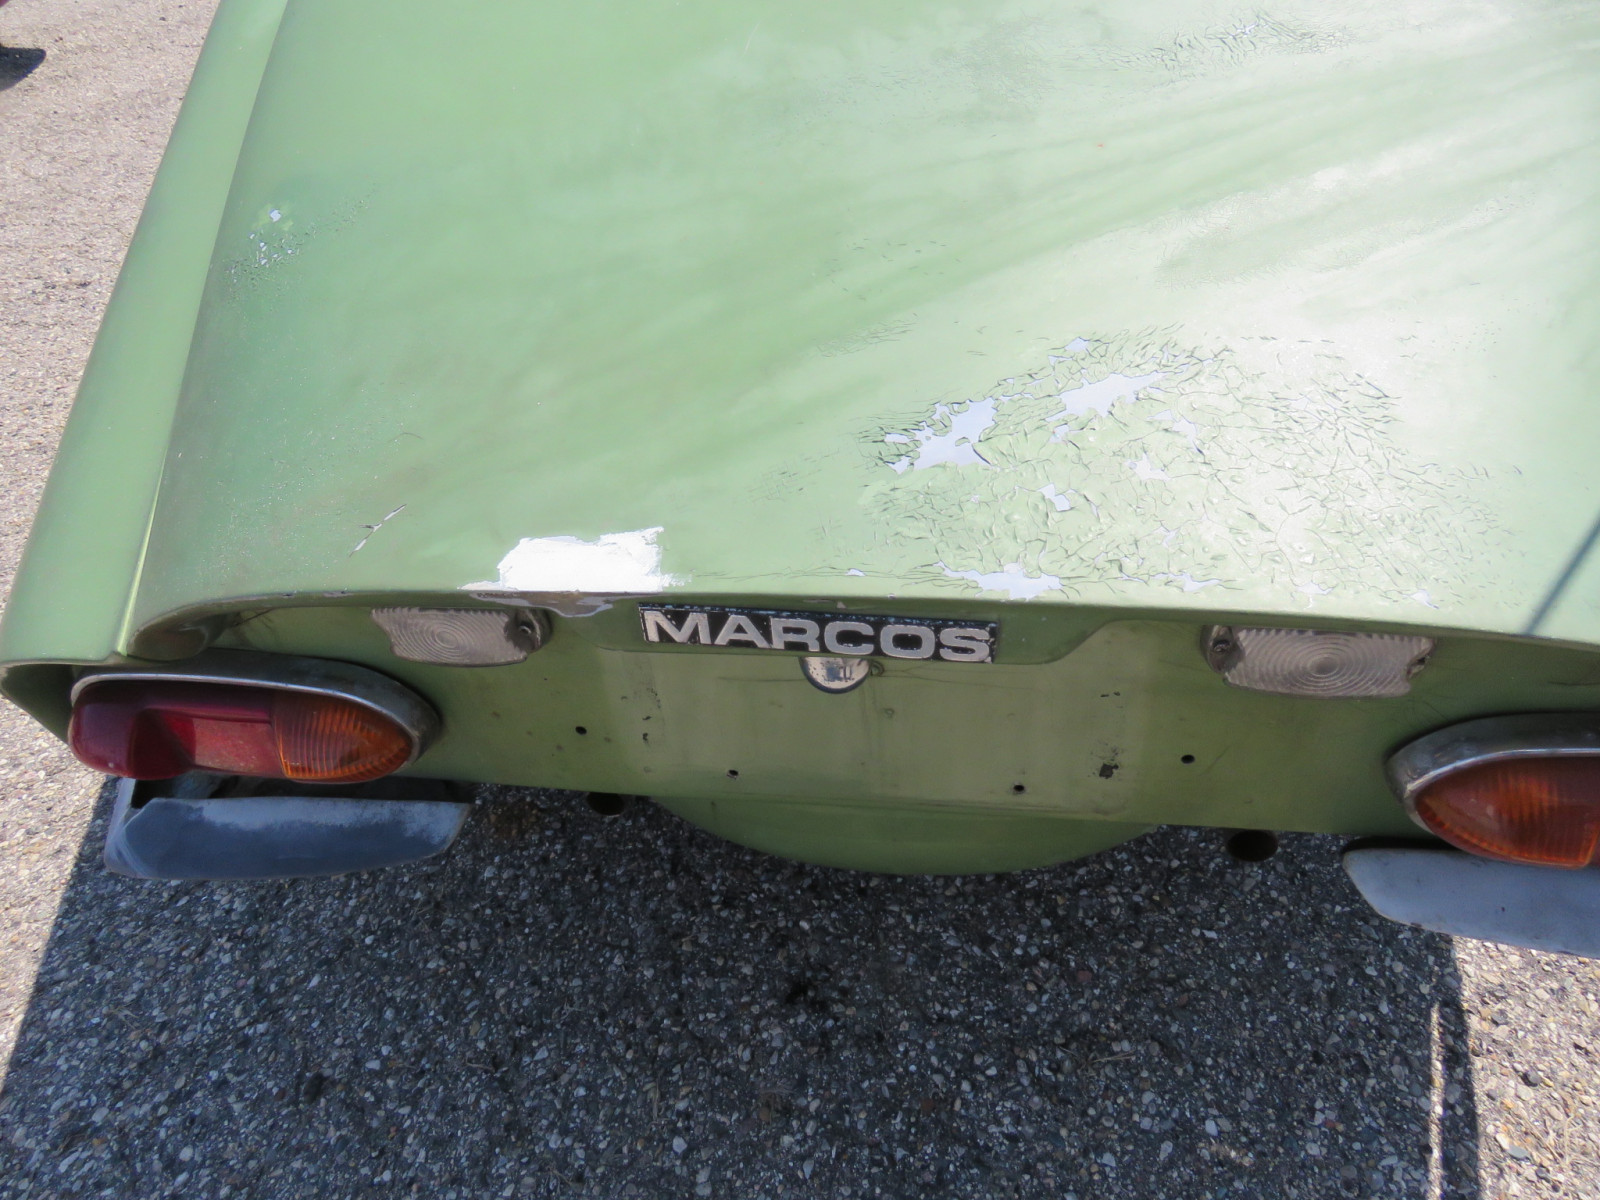 1969 Marcos Model 1600 Coupe - Image 19